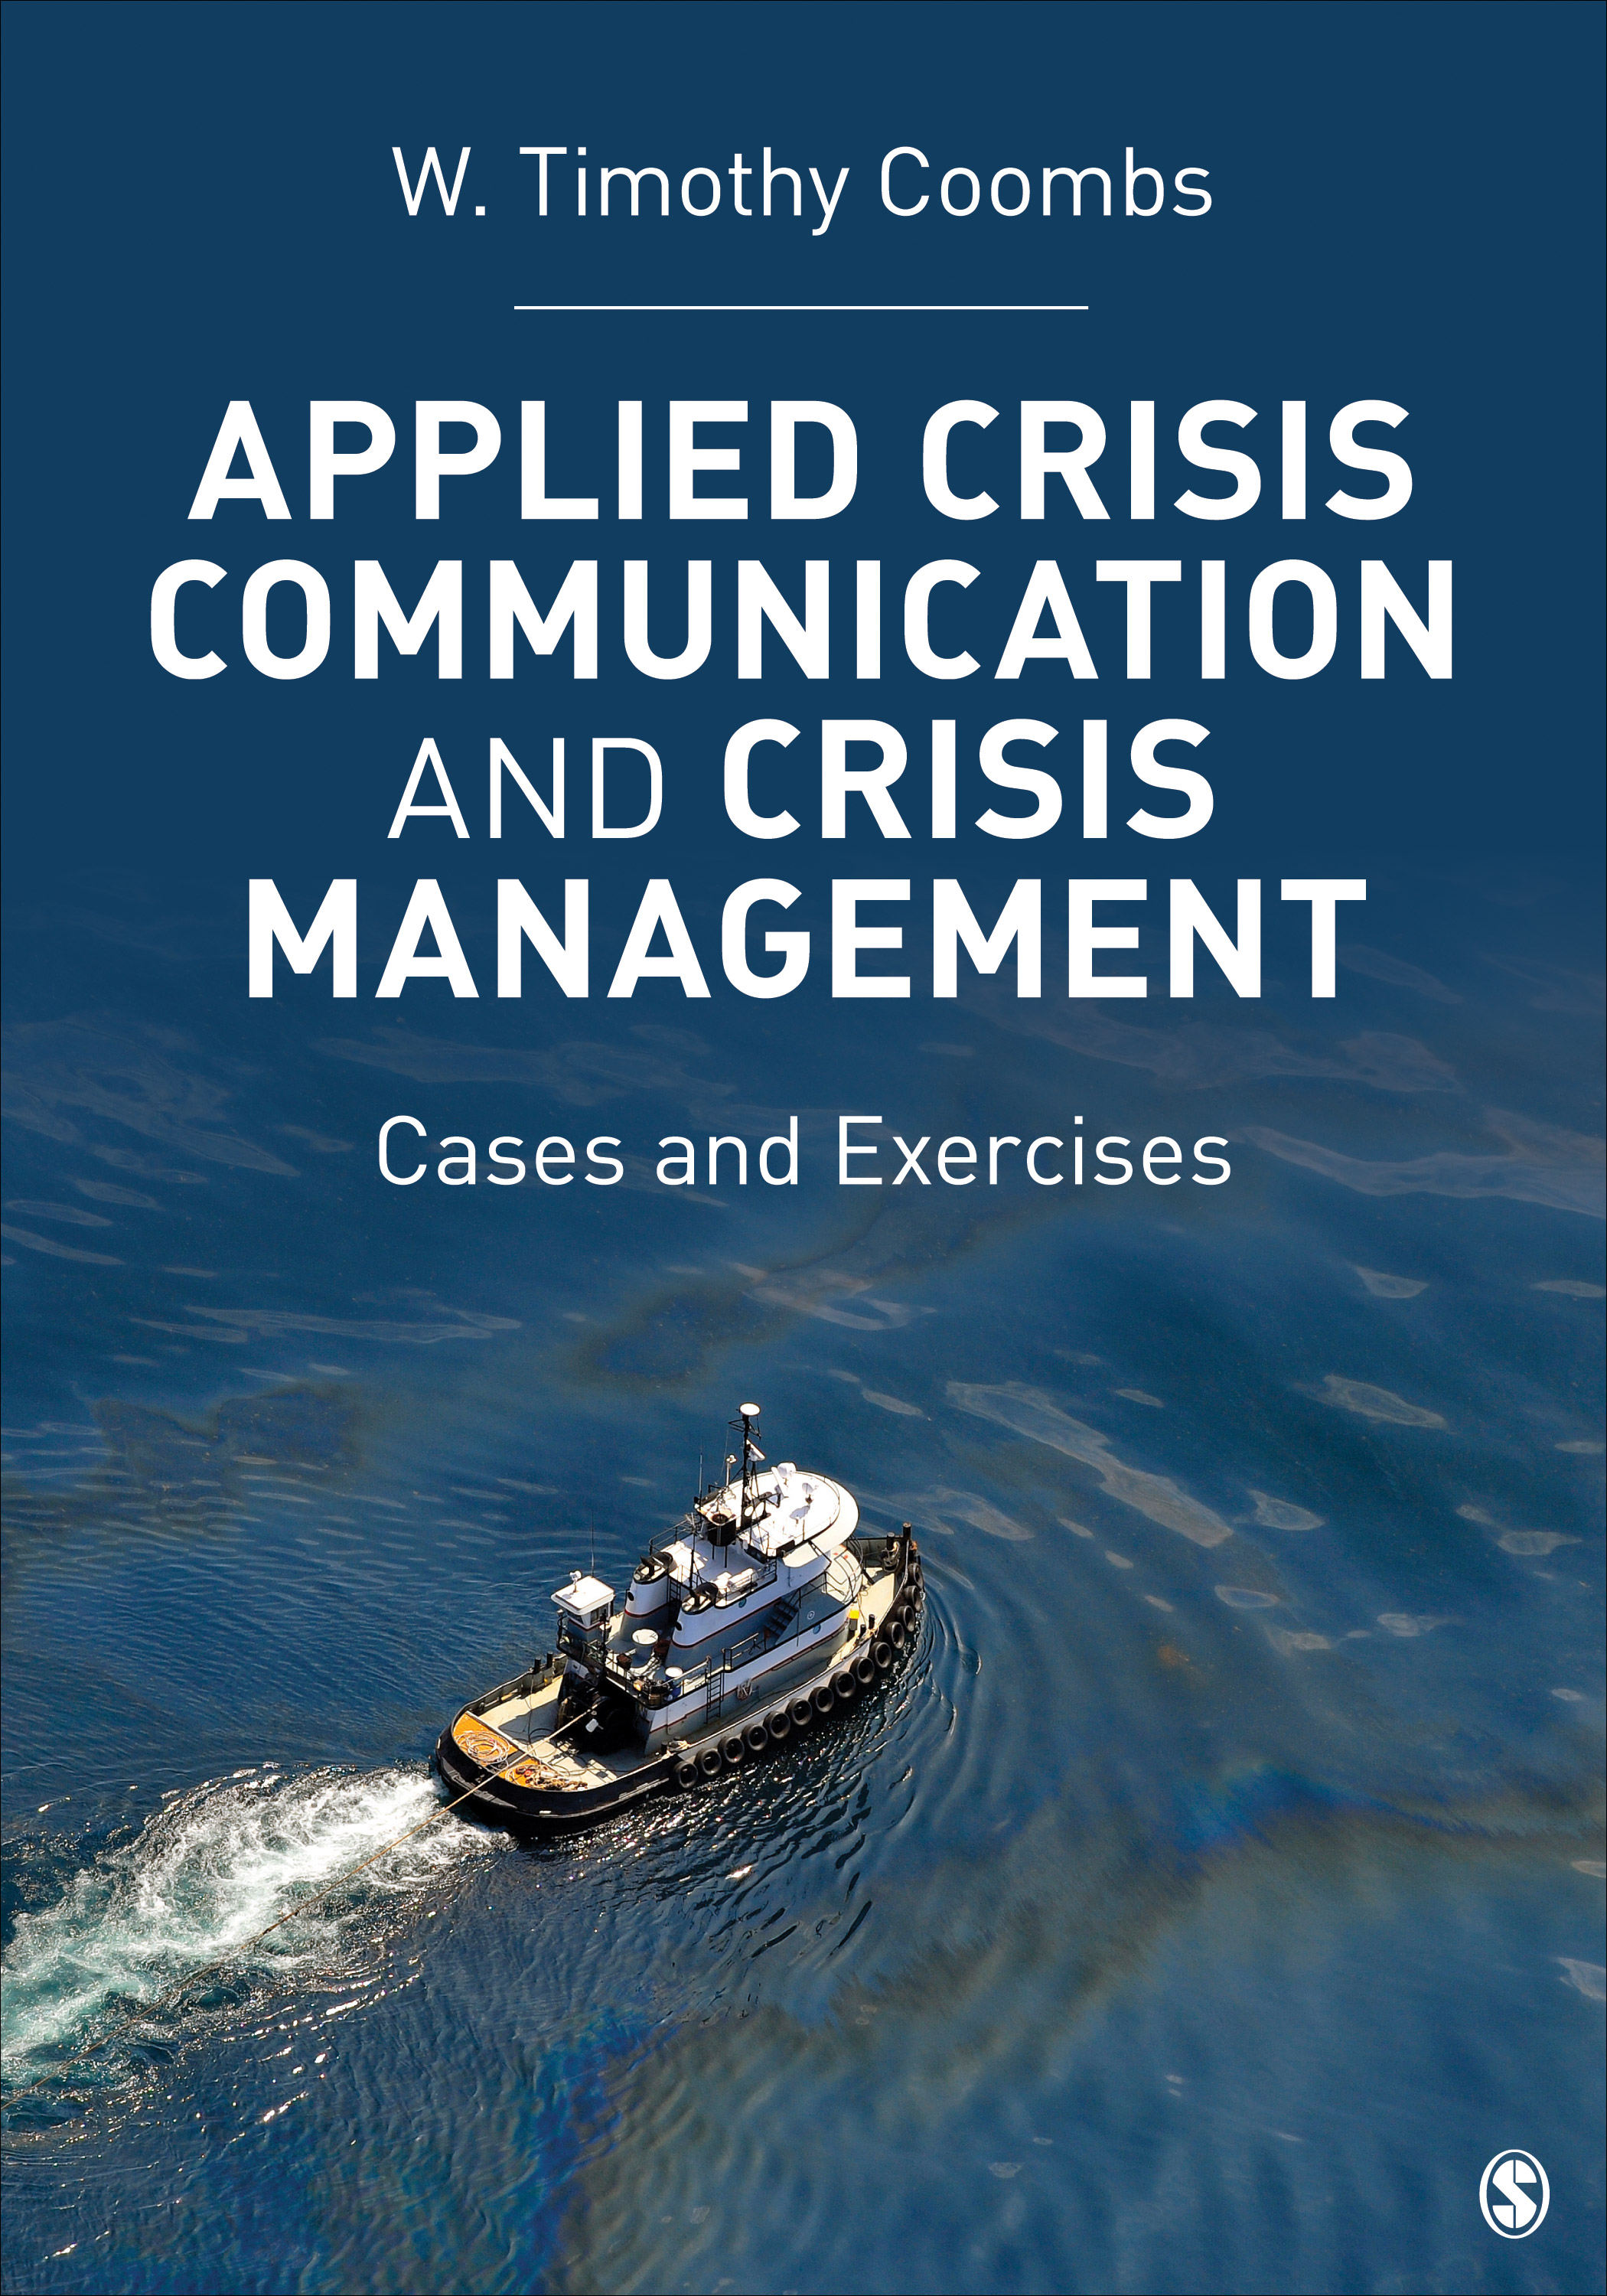 Download Ebook Applied Crisis Communication and Crisis Management by Timothy Coombs Pdf